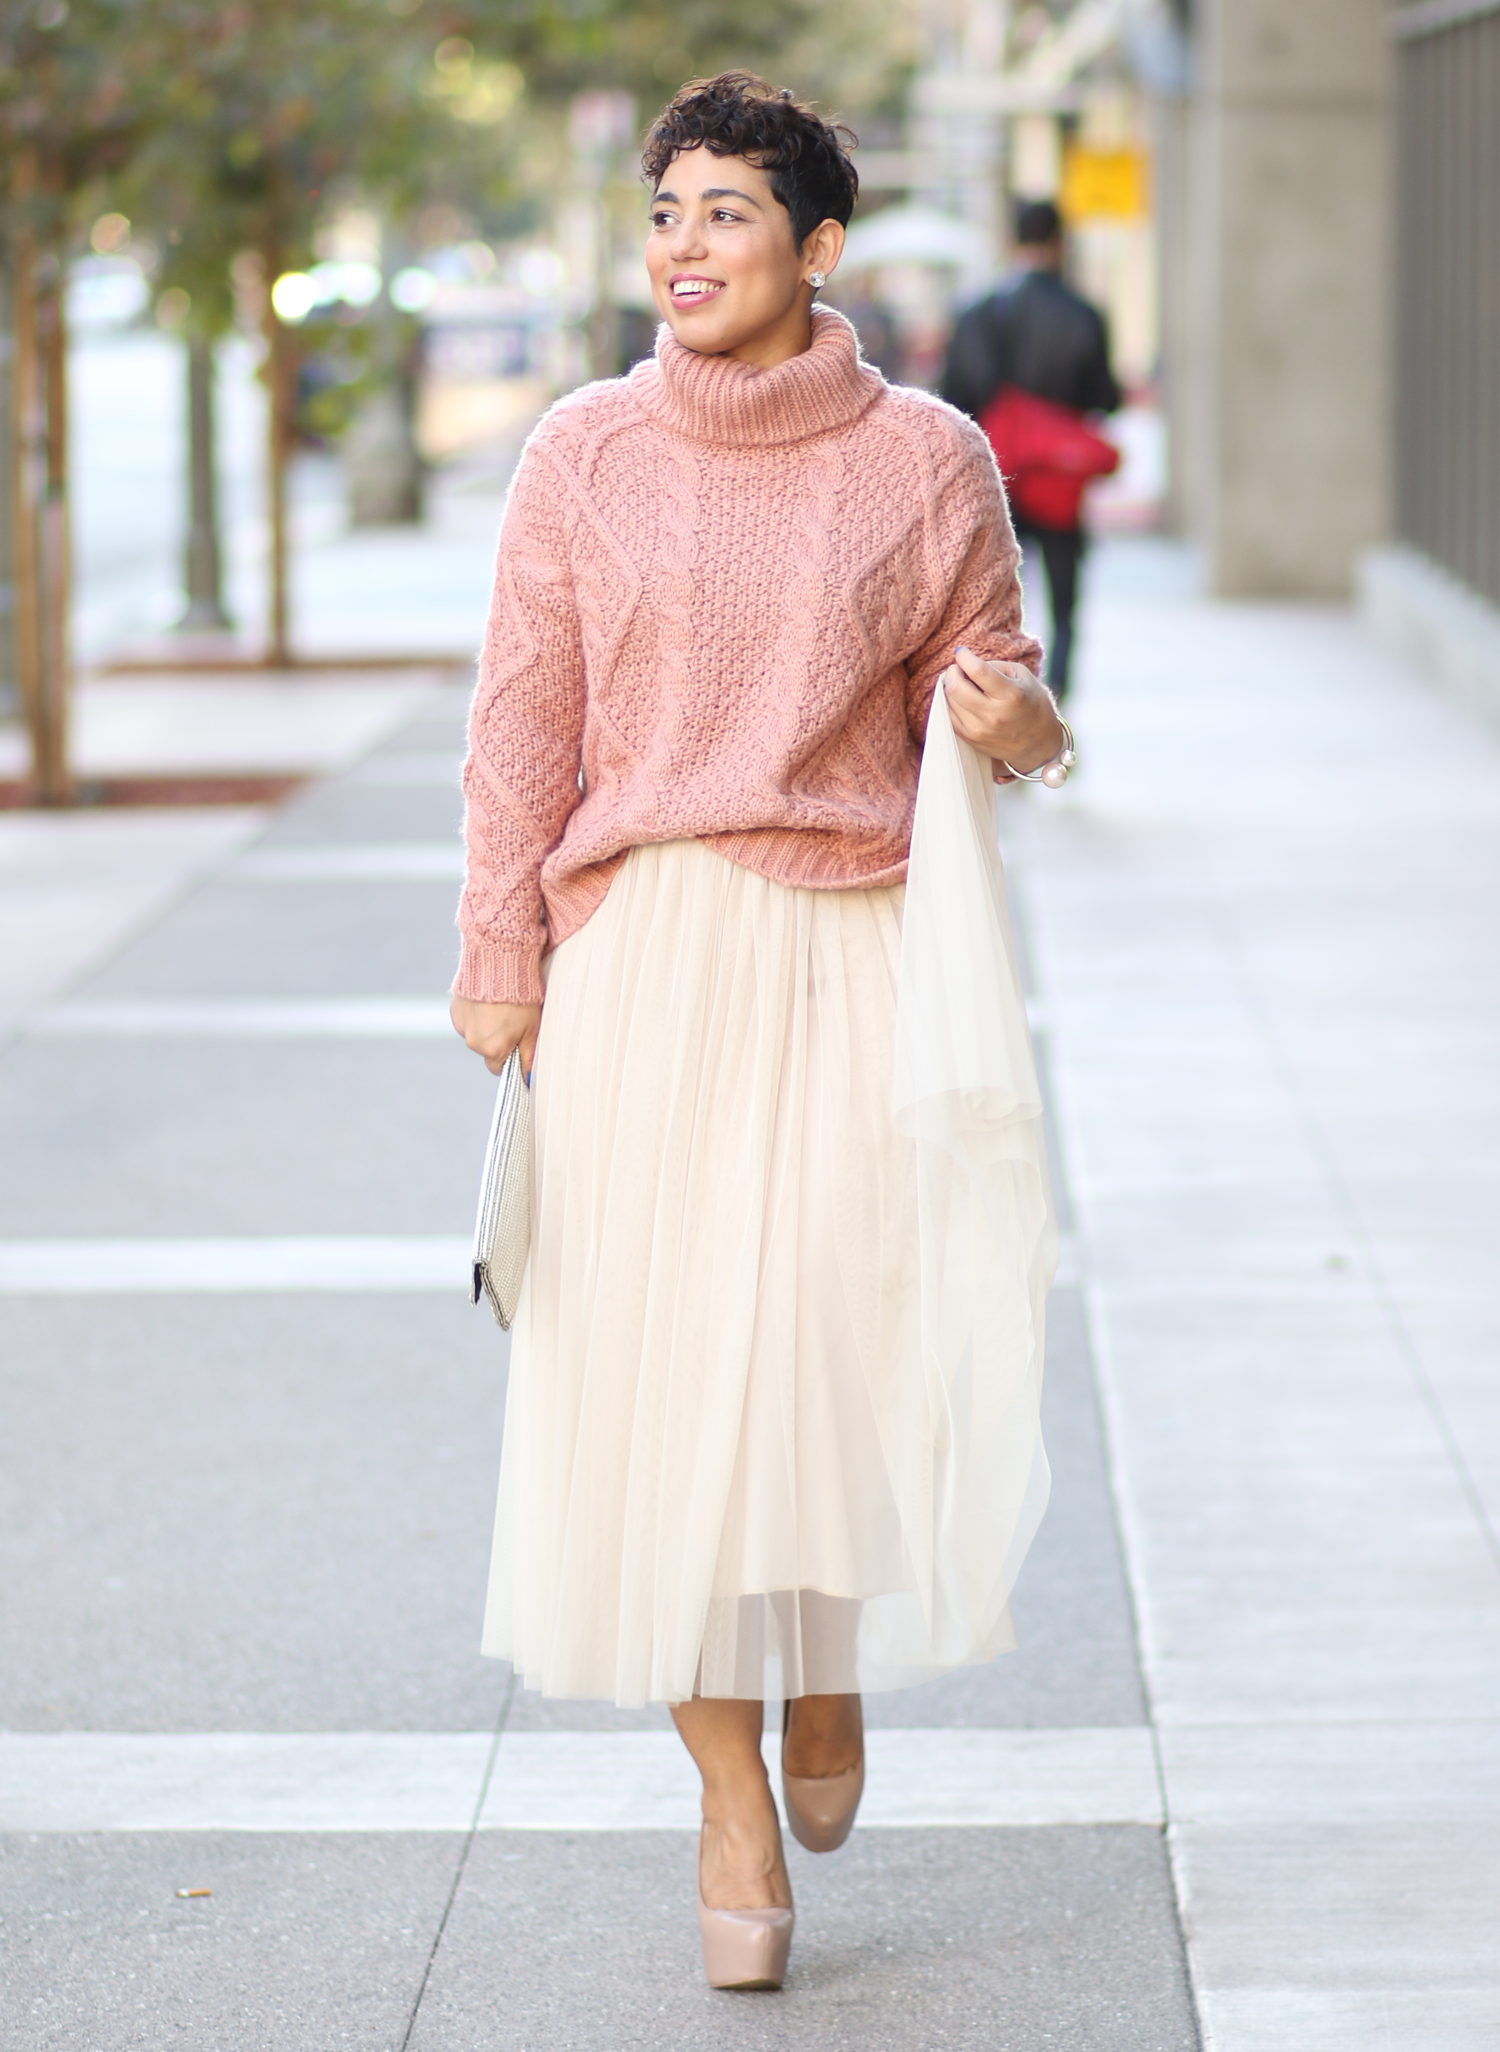 DIY Tulle Skirt + Pattern Review S1427 | Mimi G Style